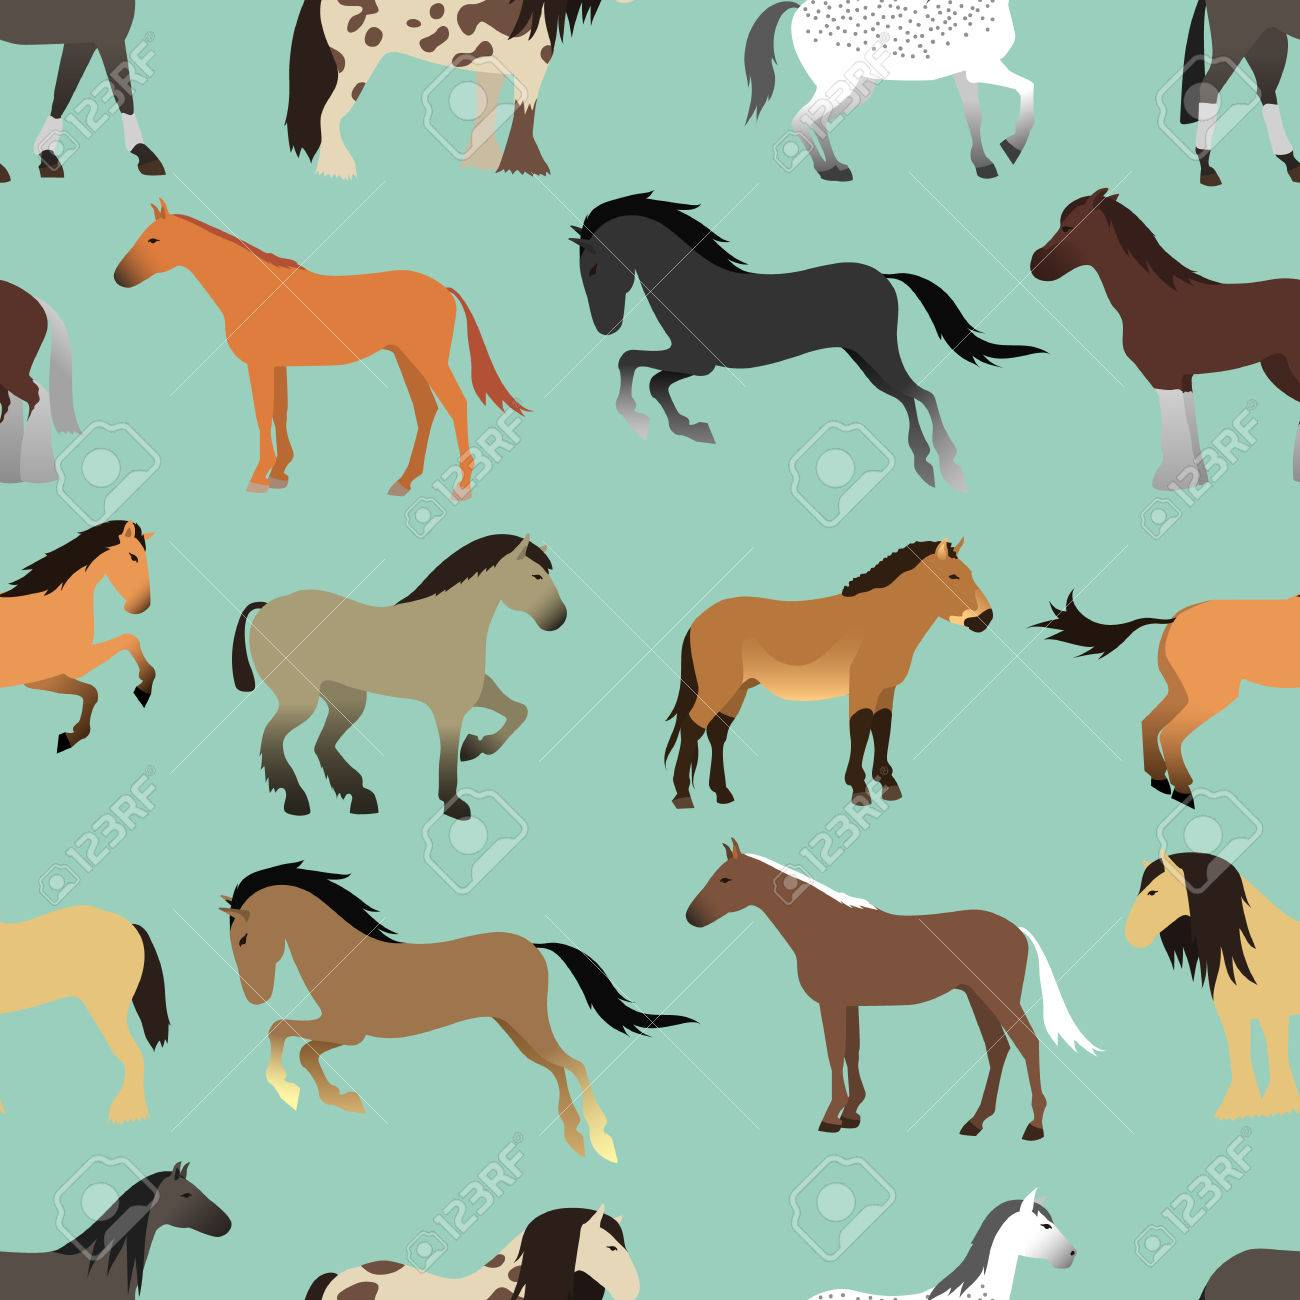 Seamless Pattern With Horse In Flat Style Animal Vector Design Royalty Free Cliparts Vectors And Stock Illustration Image 66843035